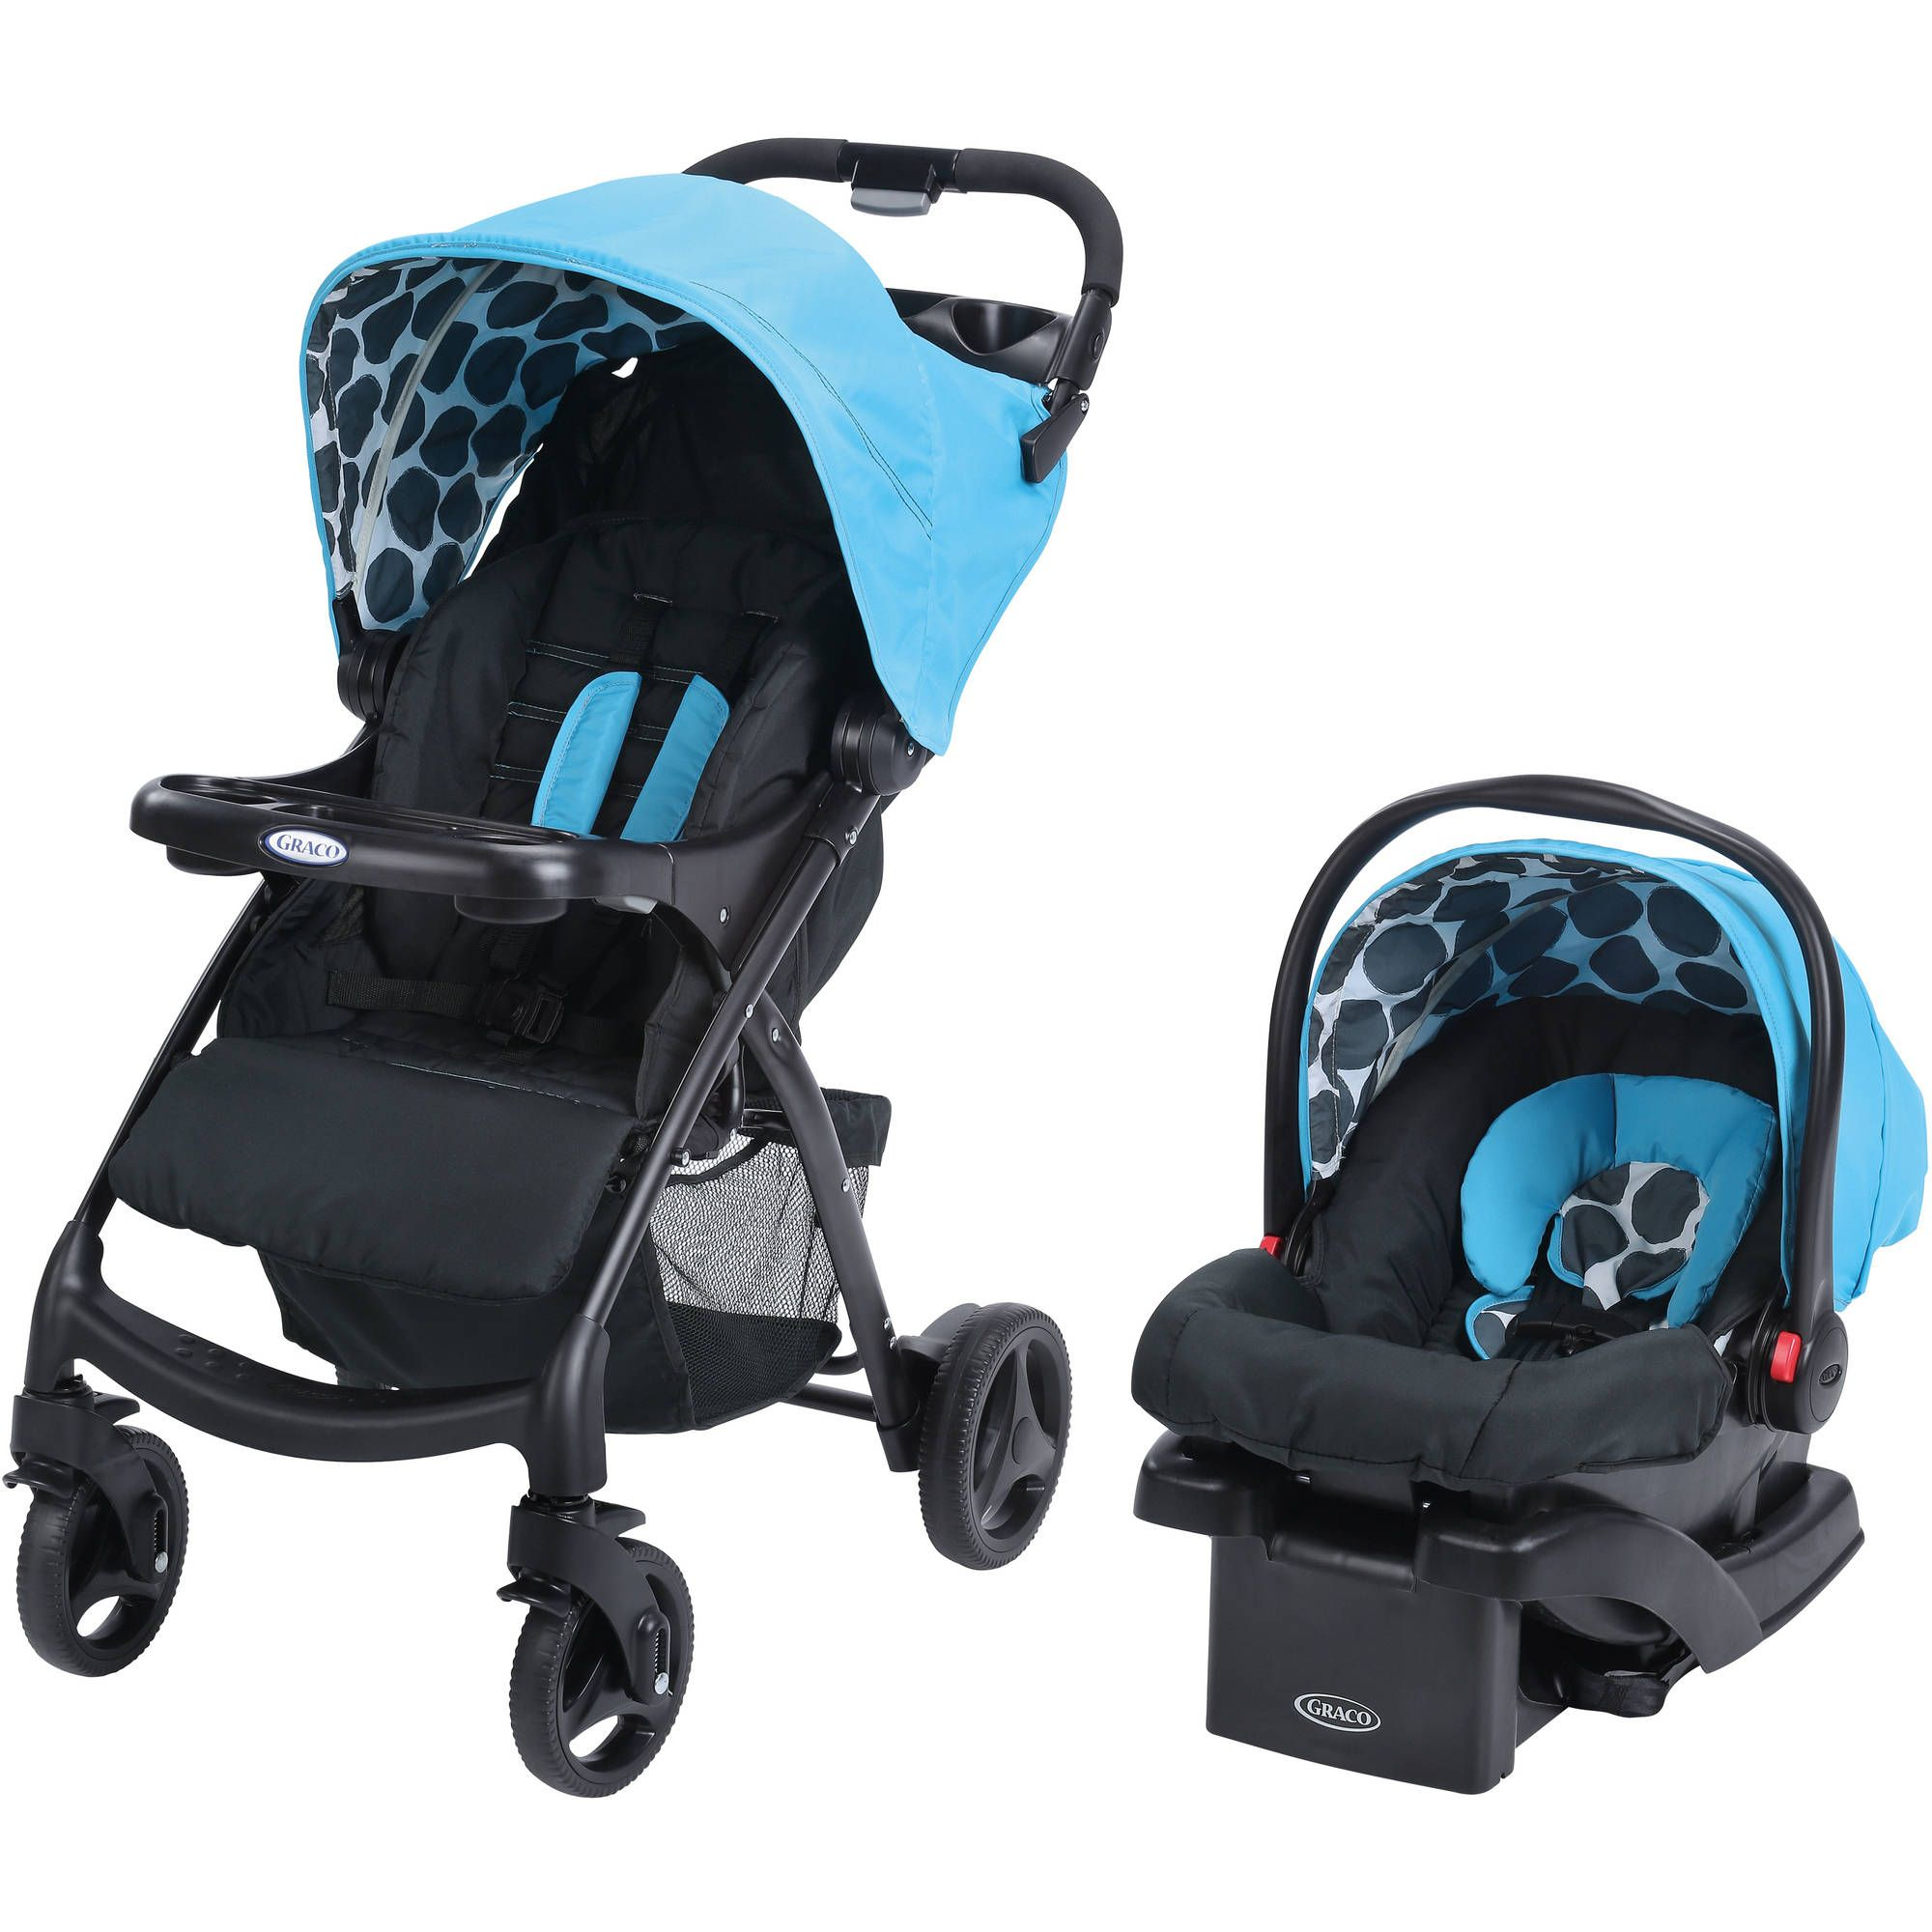 Graco Verb Click Connect Travel System, with SnugRide